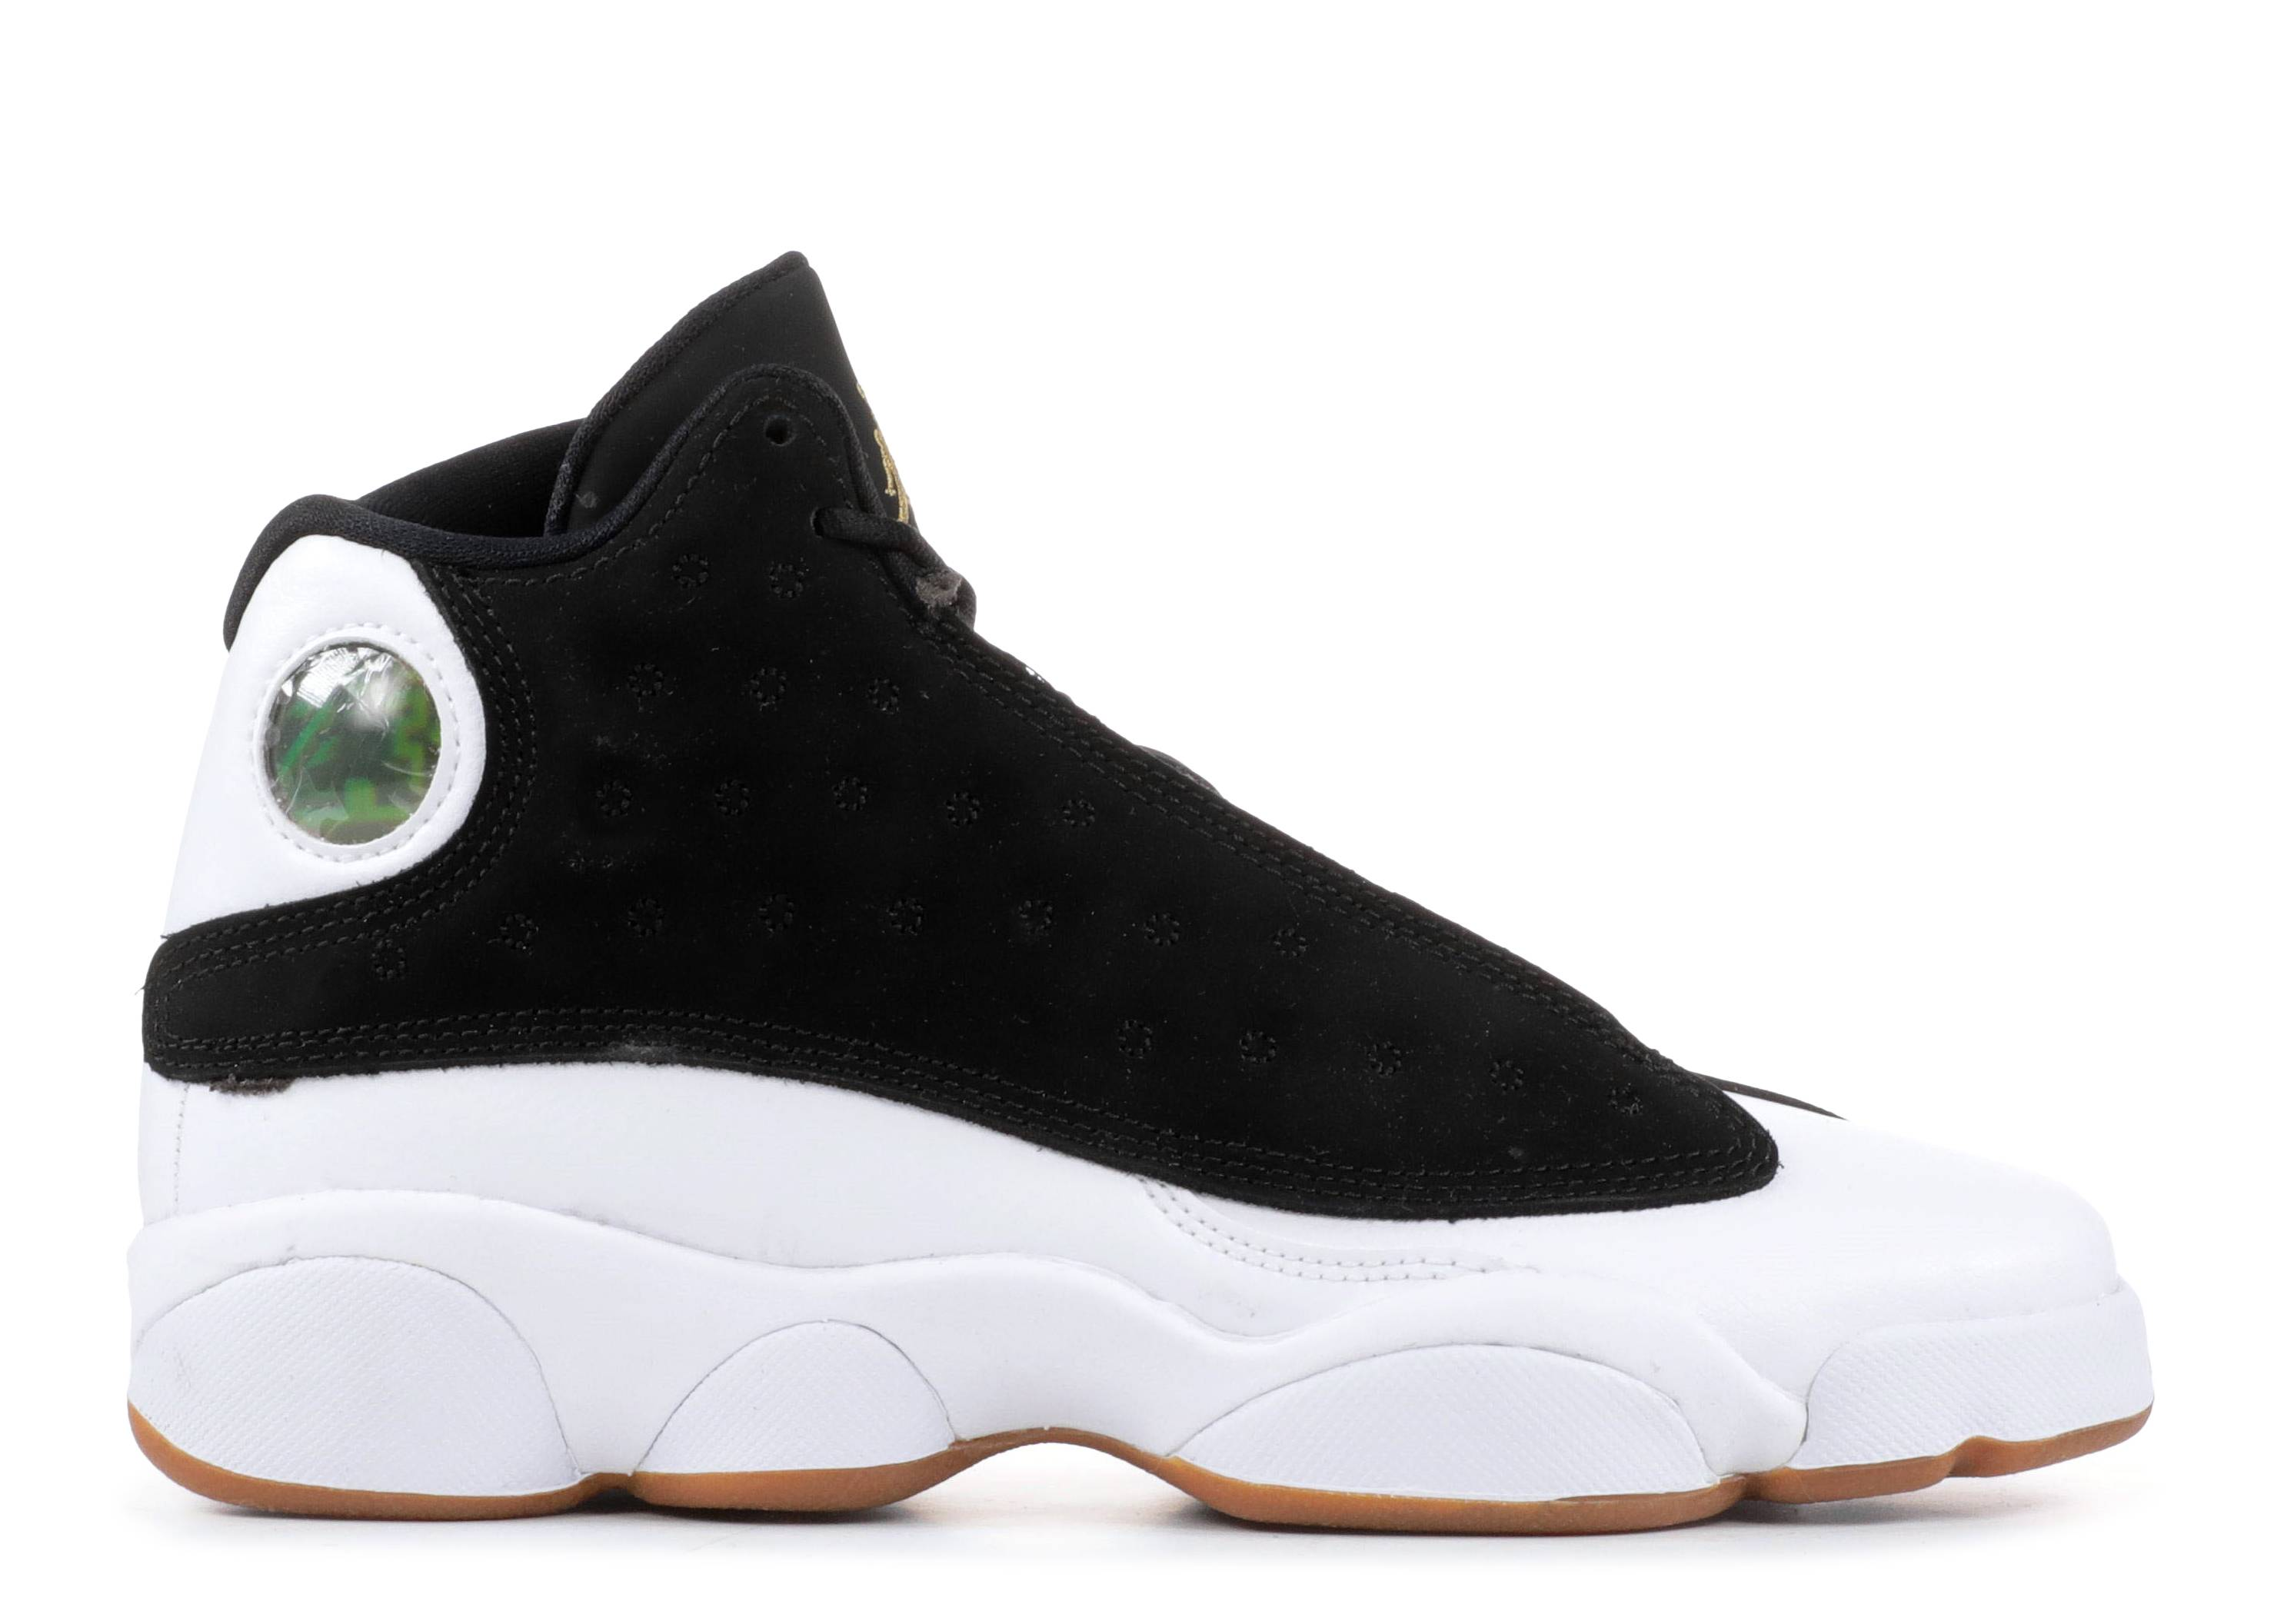 promo code 80946 76d91 Air Jordan Retro 13 Gg - Air Jordan - 439358 021 - black ...